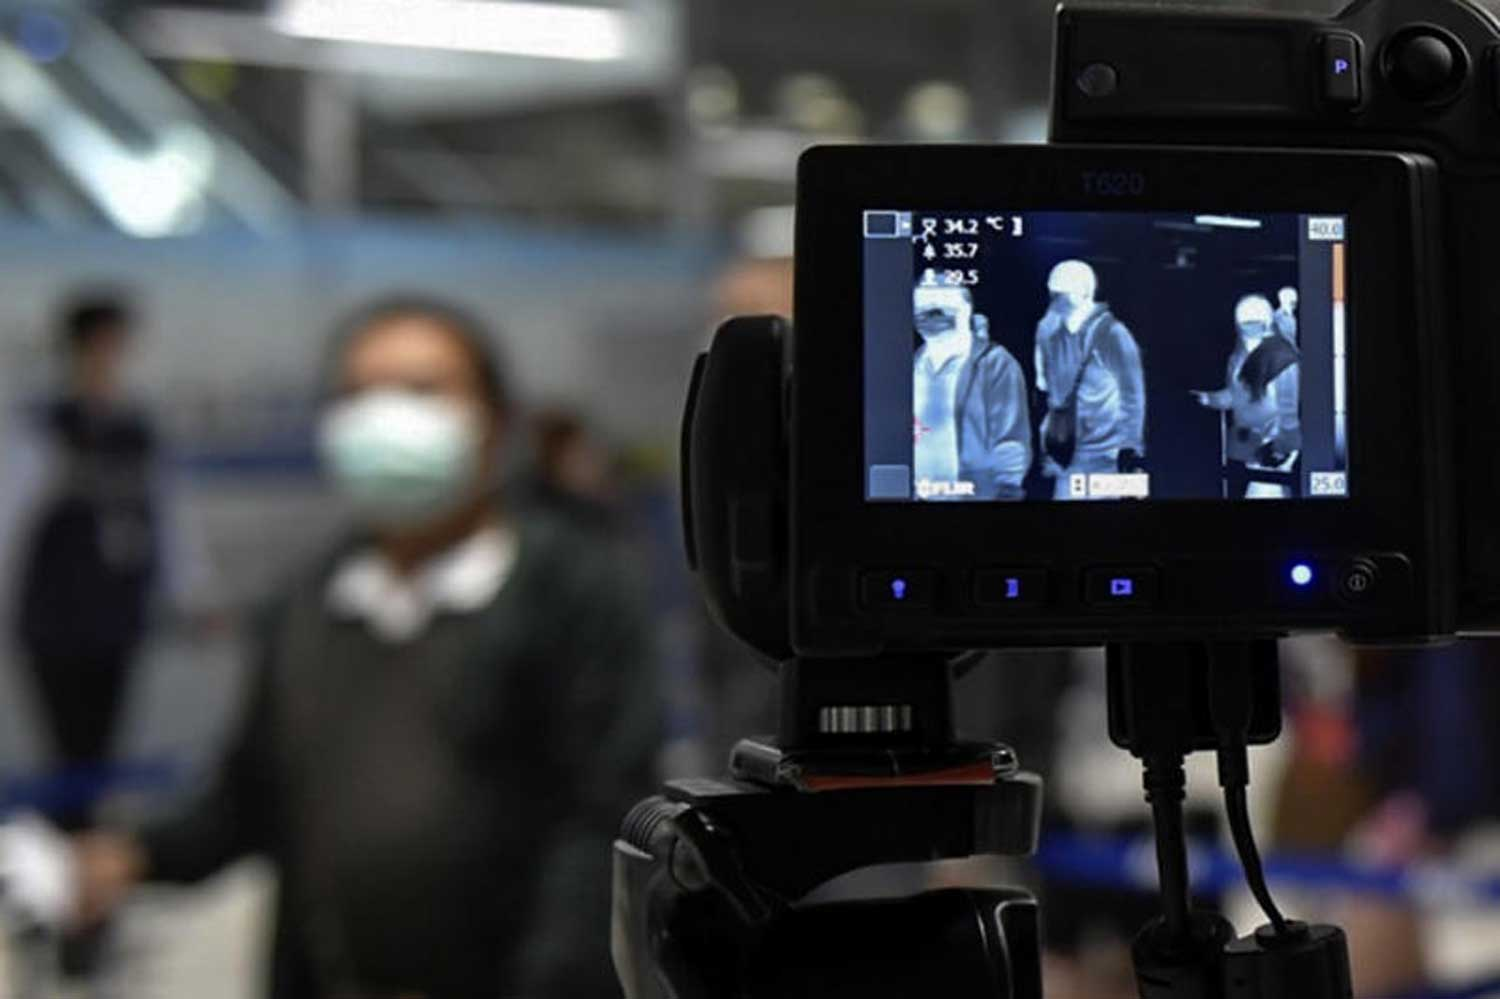 Air travellers being screened for a fever at Suvarnabhumi airport. Health authorities are seeking further details of a South Korean woman found infected with the coronavirus after arriving home from a visit to Thailand. (Photo suppled)